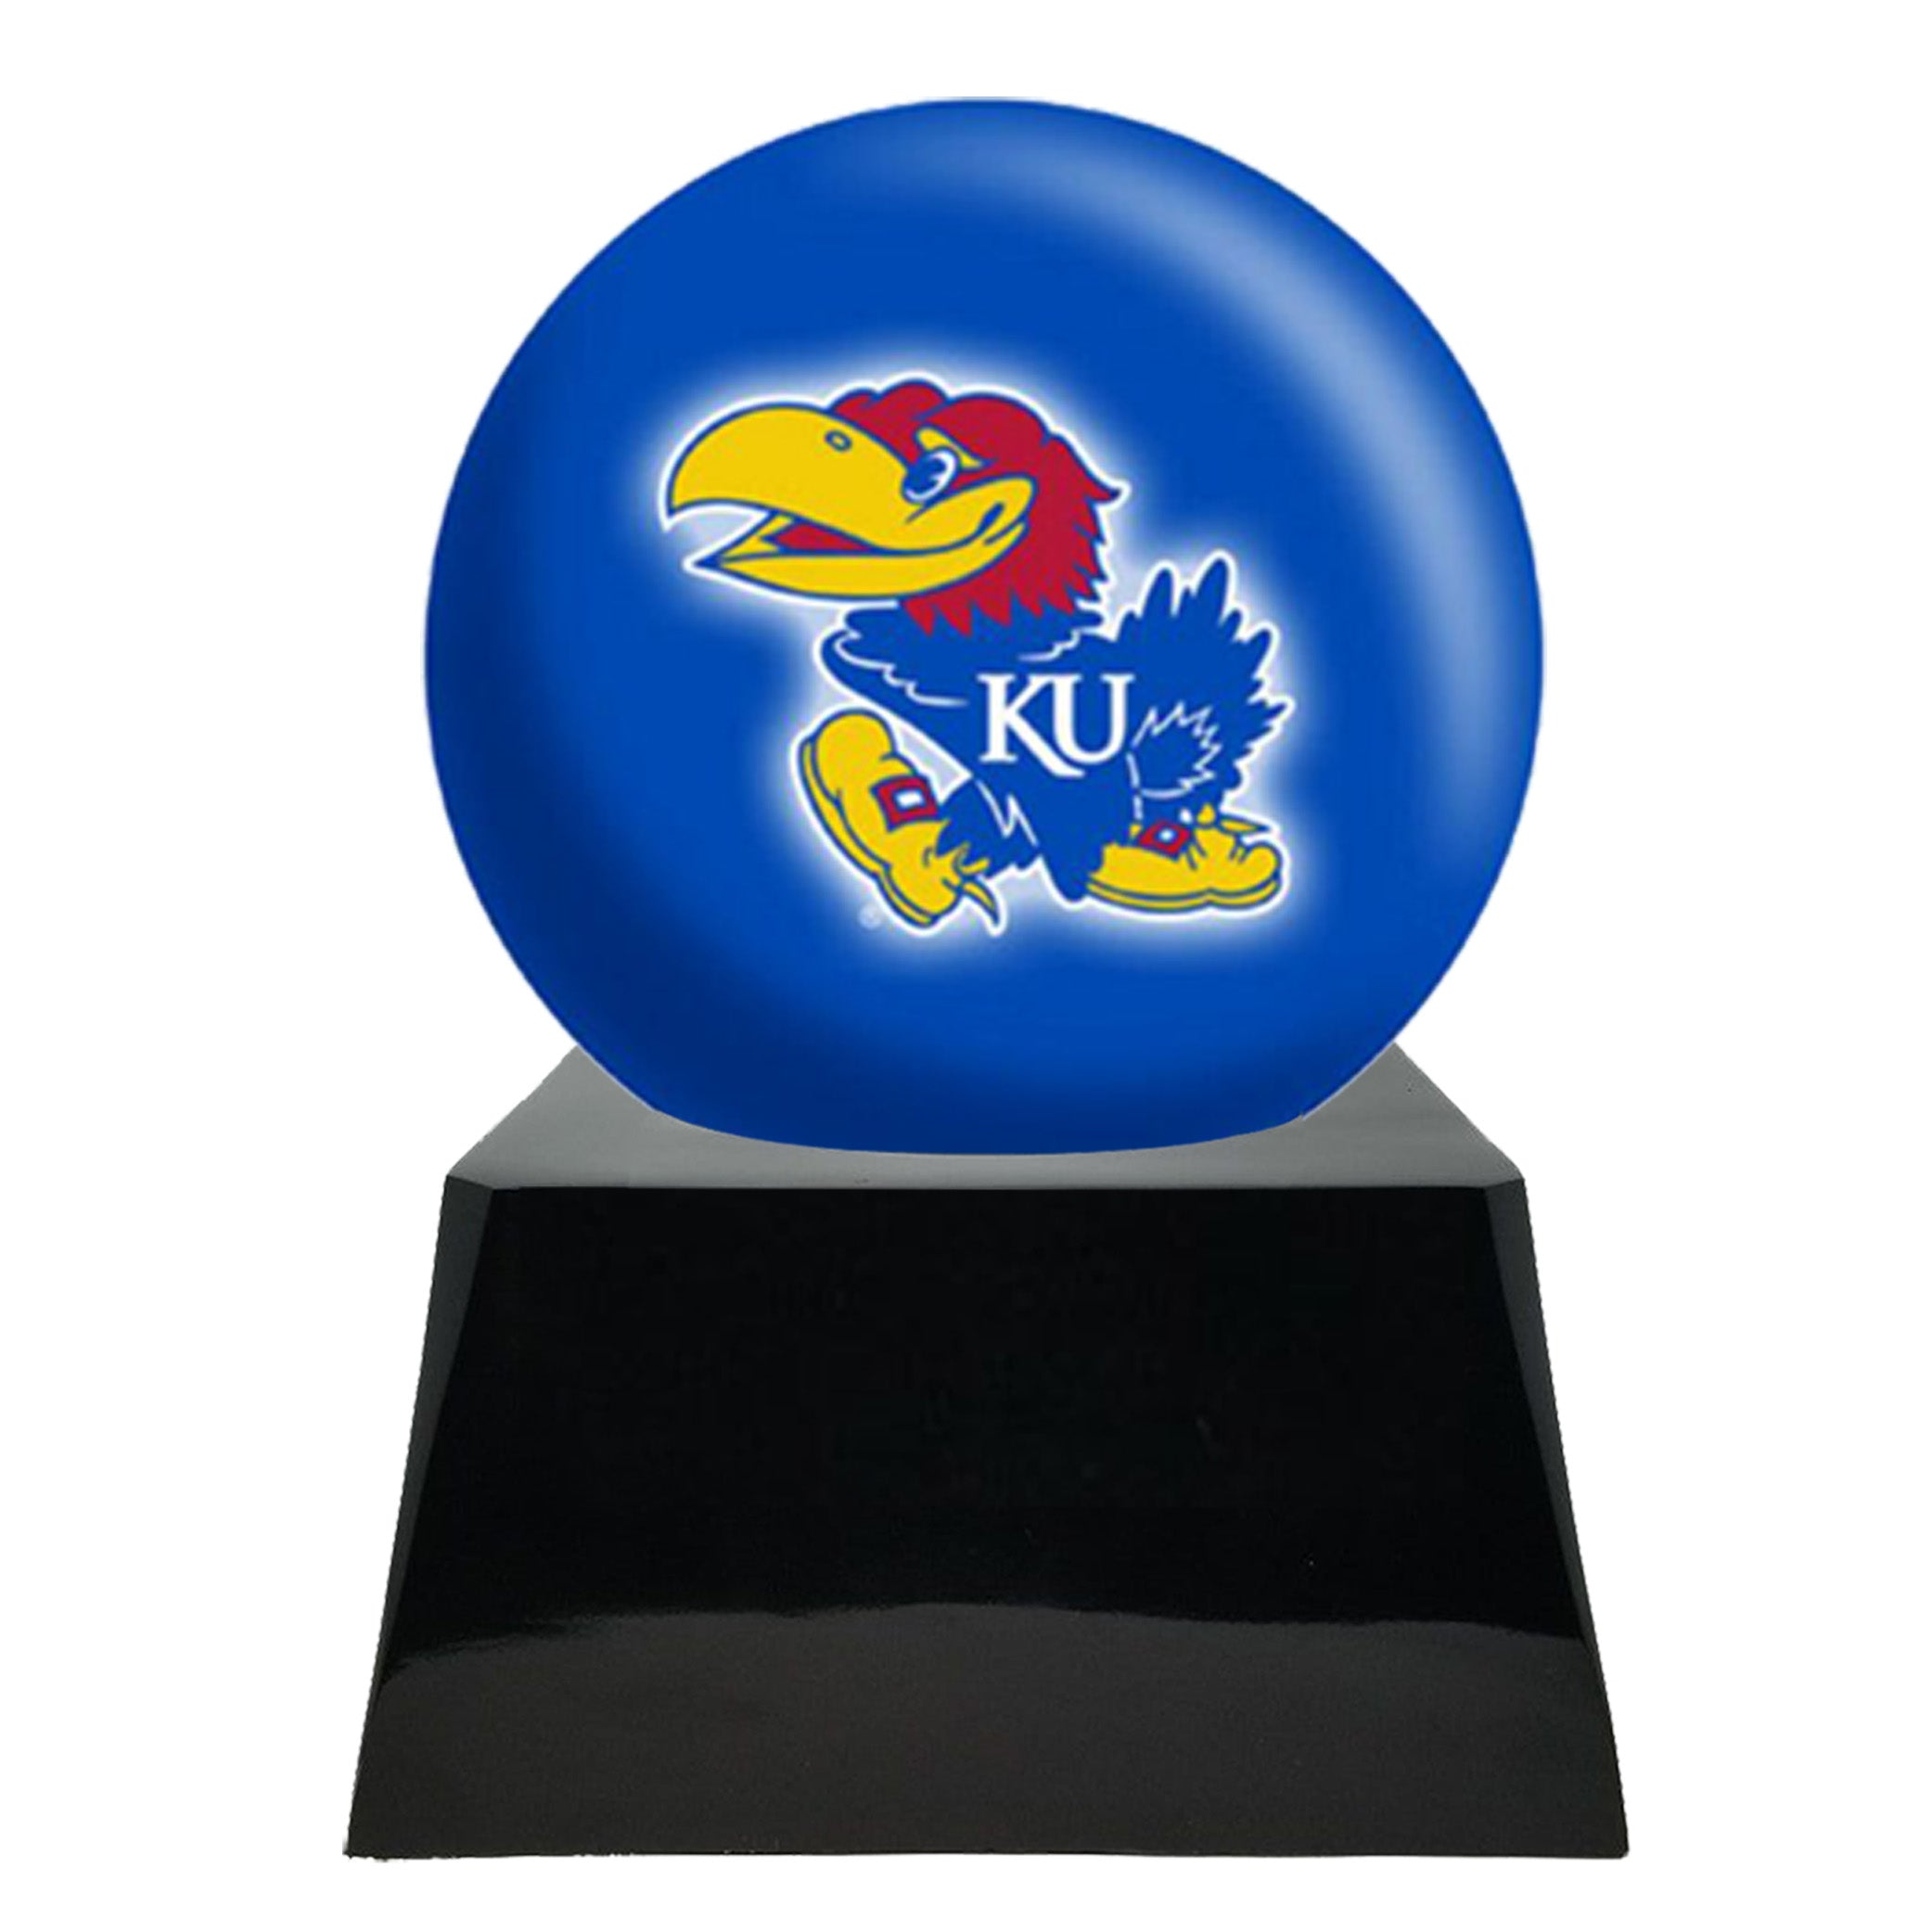 Football Cremation Urns For Human Ashes - Football Team Cremation Urn and Kansas Jayhawks Ball Decor with Custom Metal Plaque - Memorials4u